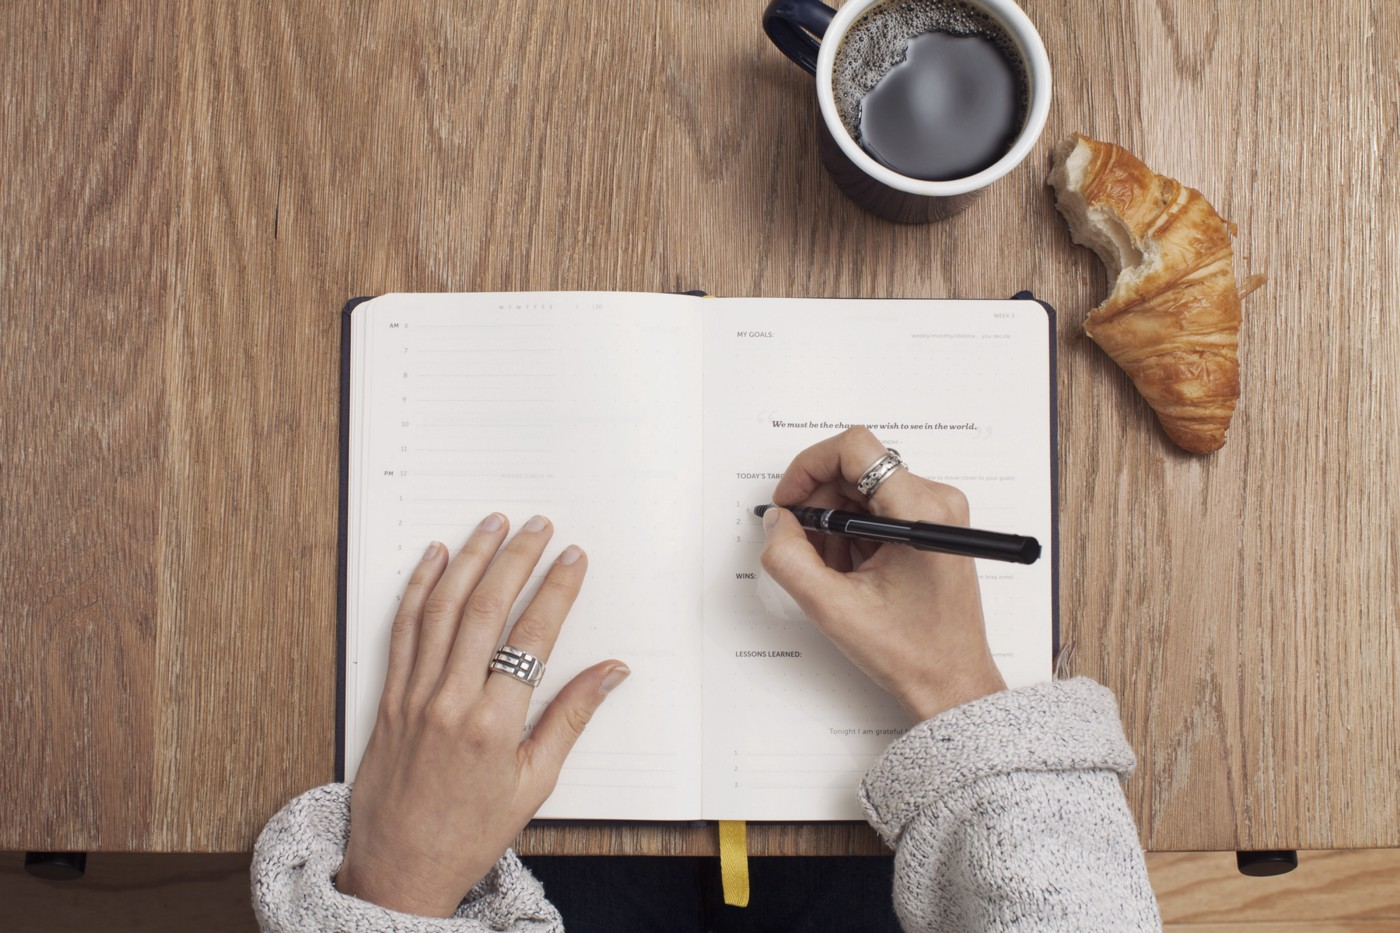 A pair of hands writing in a notebook on a wooden table along with a cup of coffee and a half eaten croissant